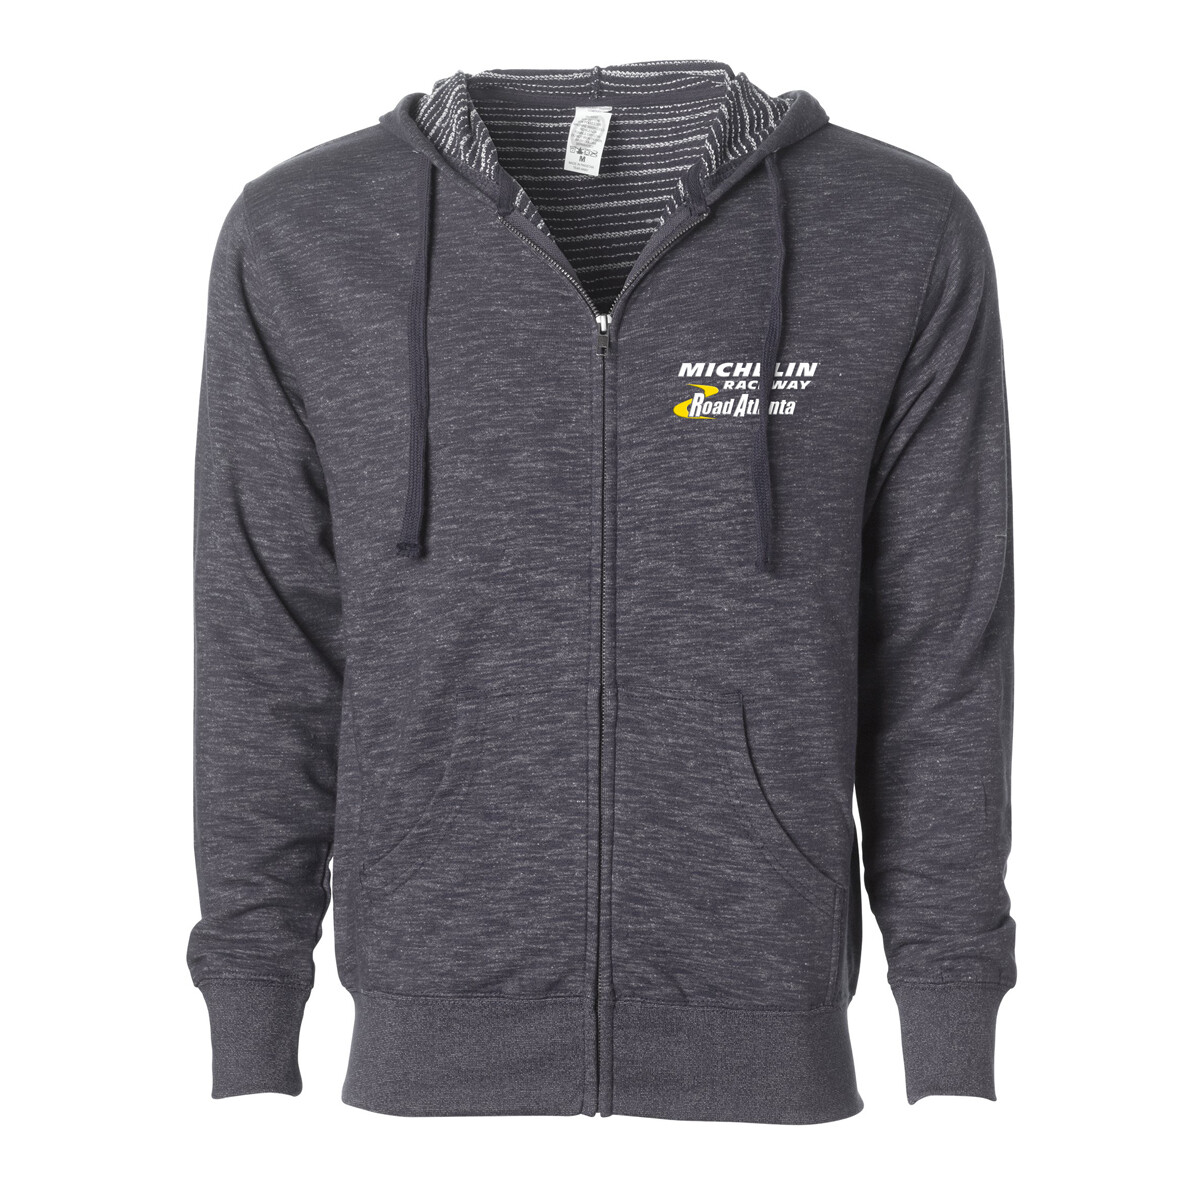 Michelin Raceway Road Atlanta Men's Baja Full Zip Hoodie